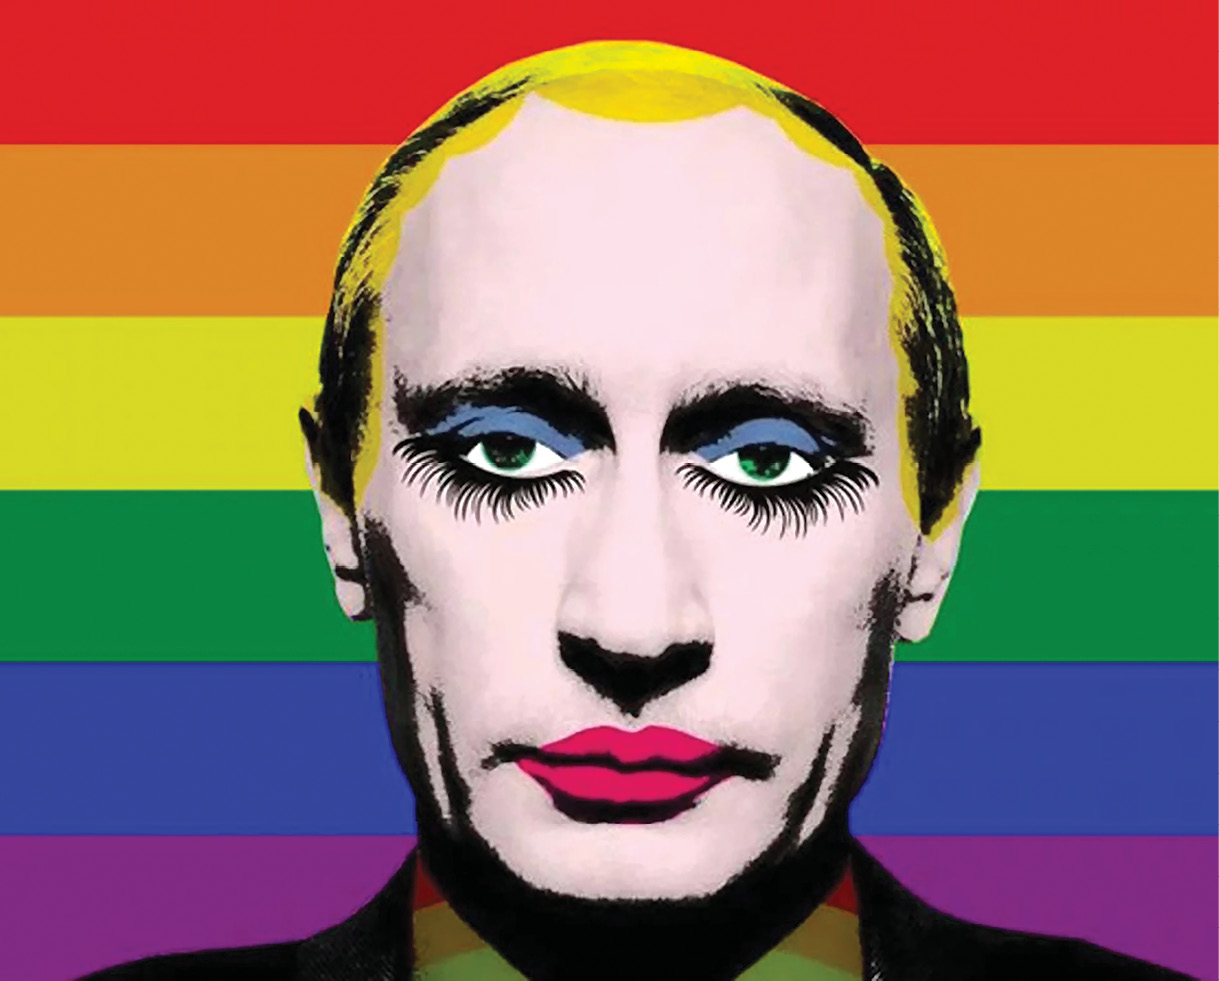 """Vladimir Putin officially banned this popular meme of himself with his face painted in drag. That reaction inadvertently made the meme more popular than ever, and it became an international sensation. According to the author of this article, Putin's """"thin skin"""" makes him an easy target for ridicule.  (Artist unknown)"""